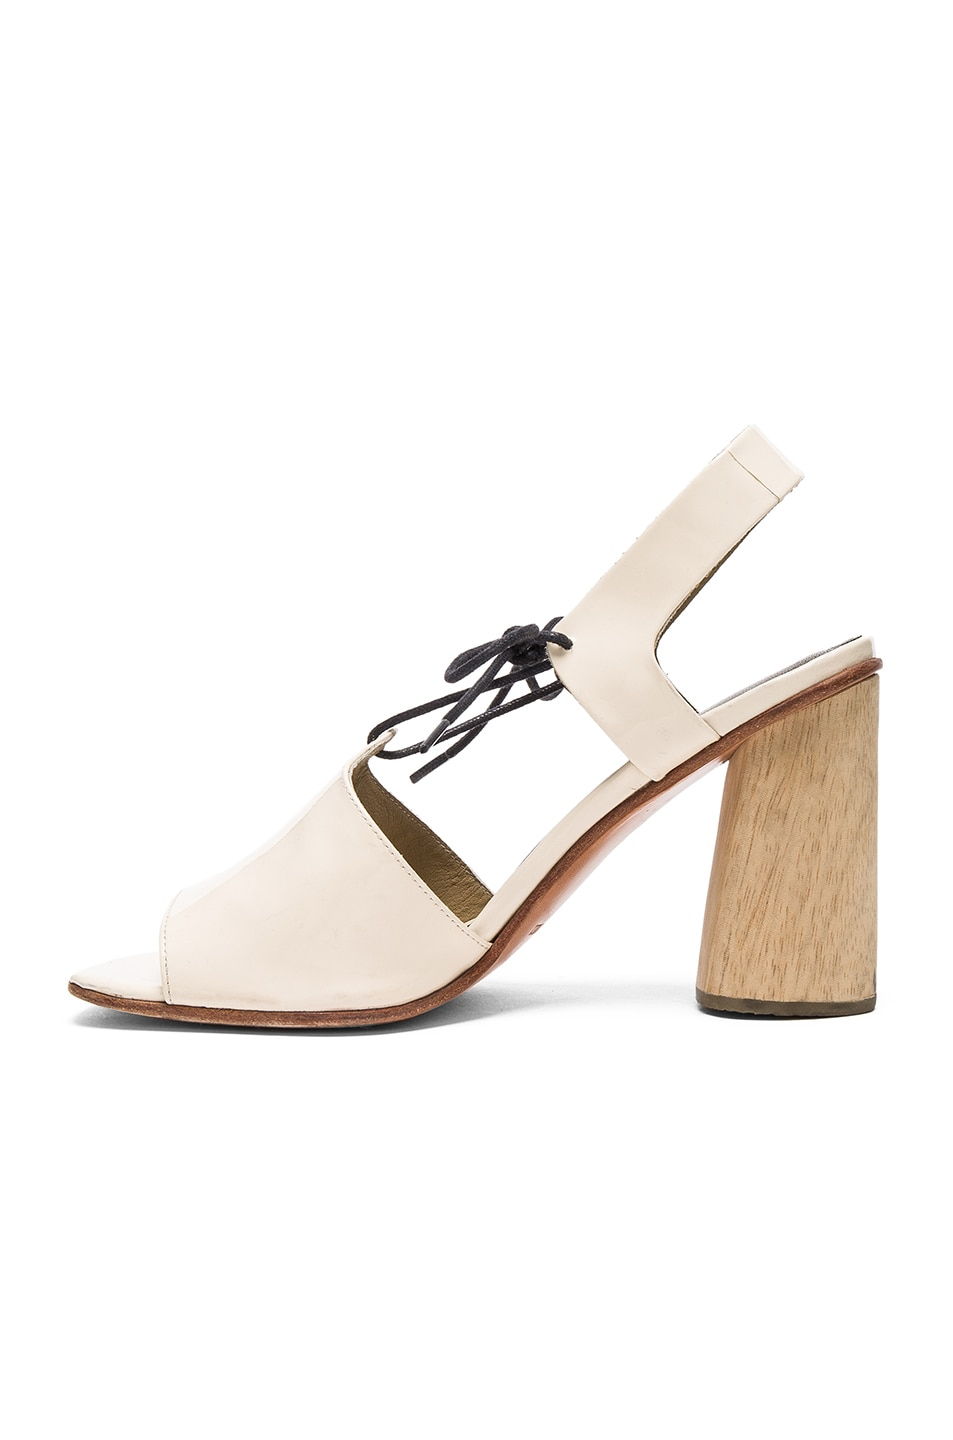 Image 5 of Rachel Comey Patent Leather Melrose Heels in Creamsicle Patent